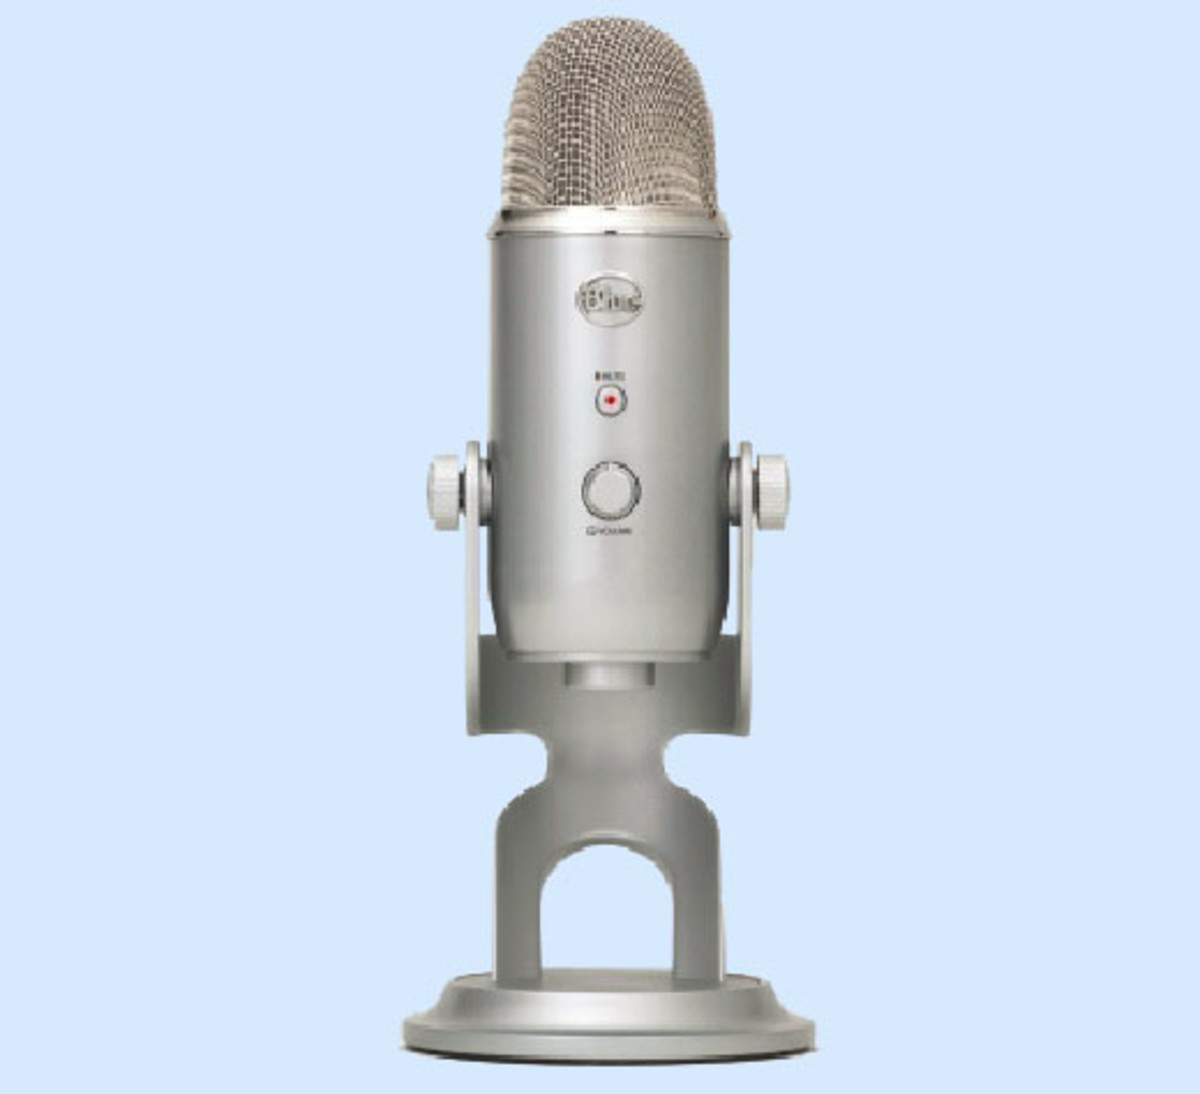 best budget microphones for creating youtube videos 2018 turbofuture. Black Bedroom Furniture Sets. Home Design Ideas